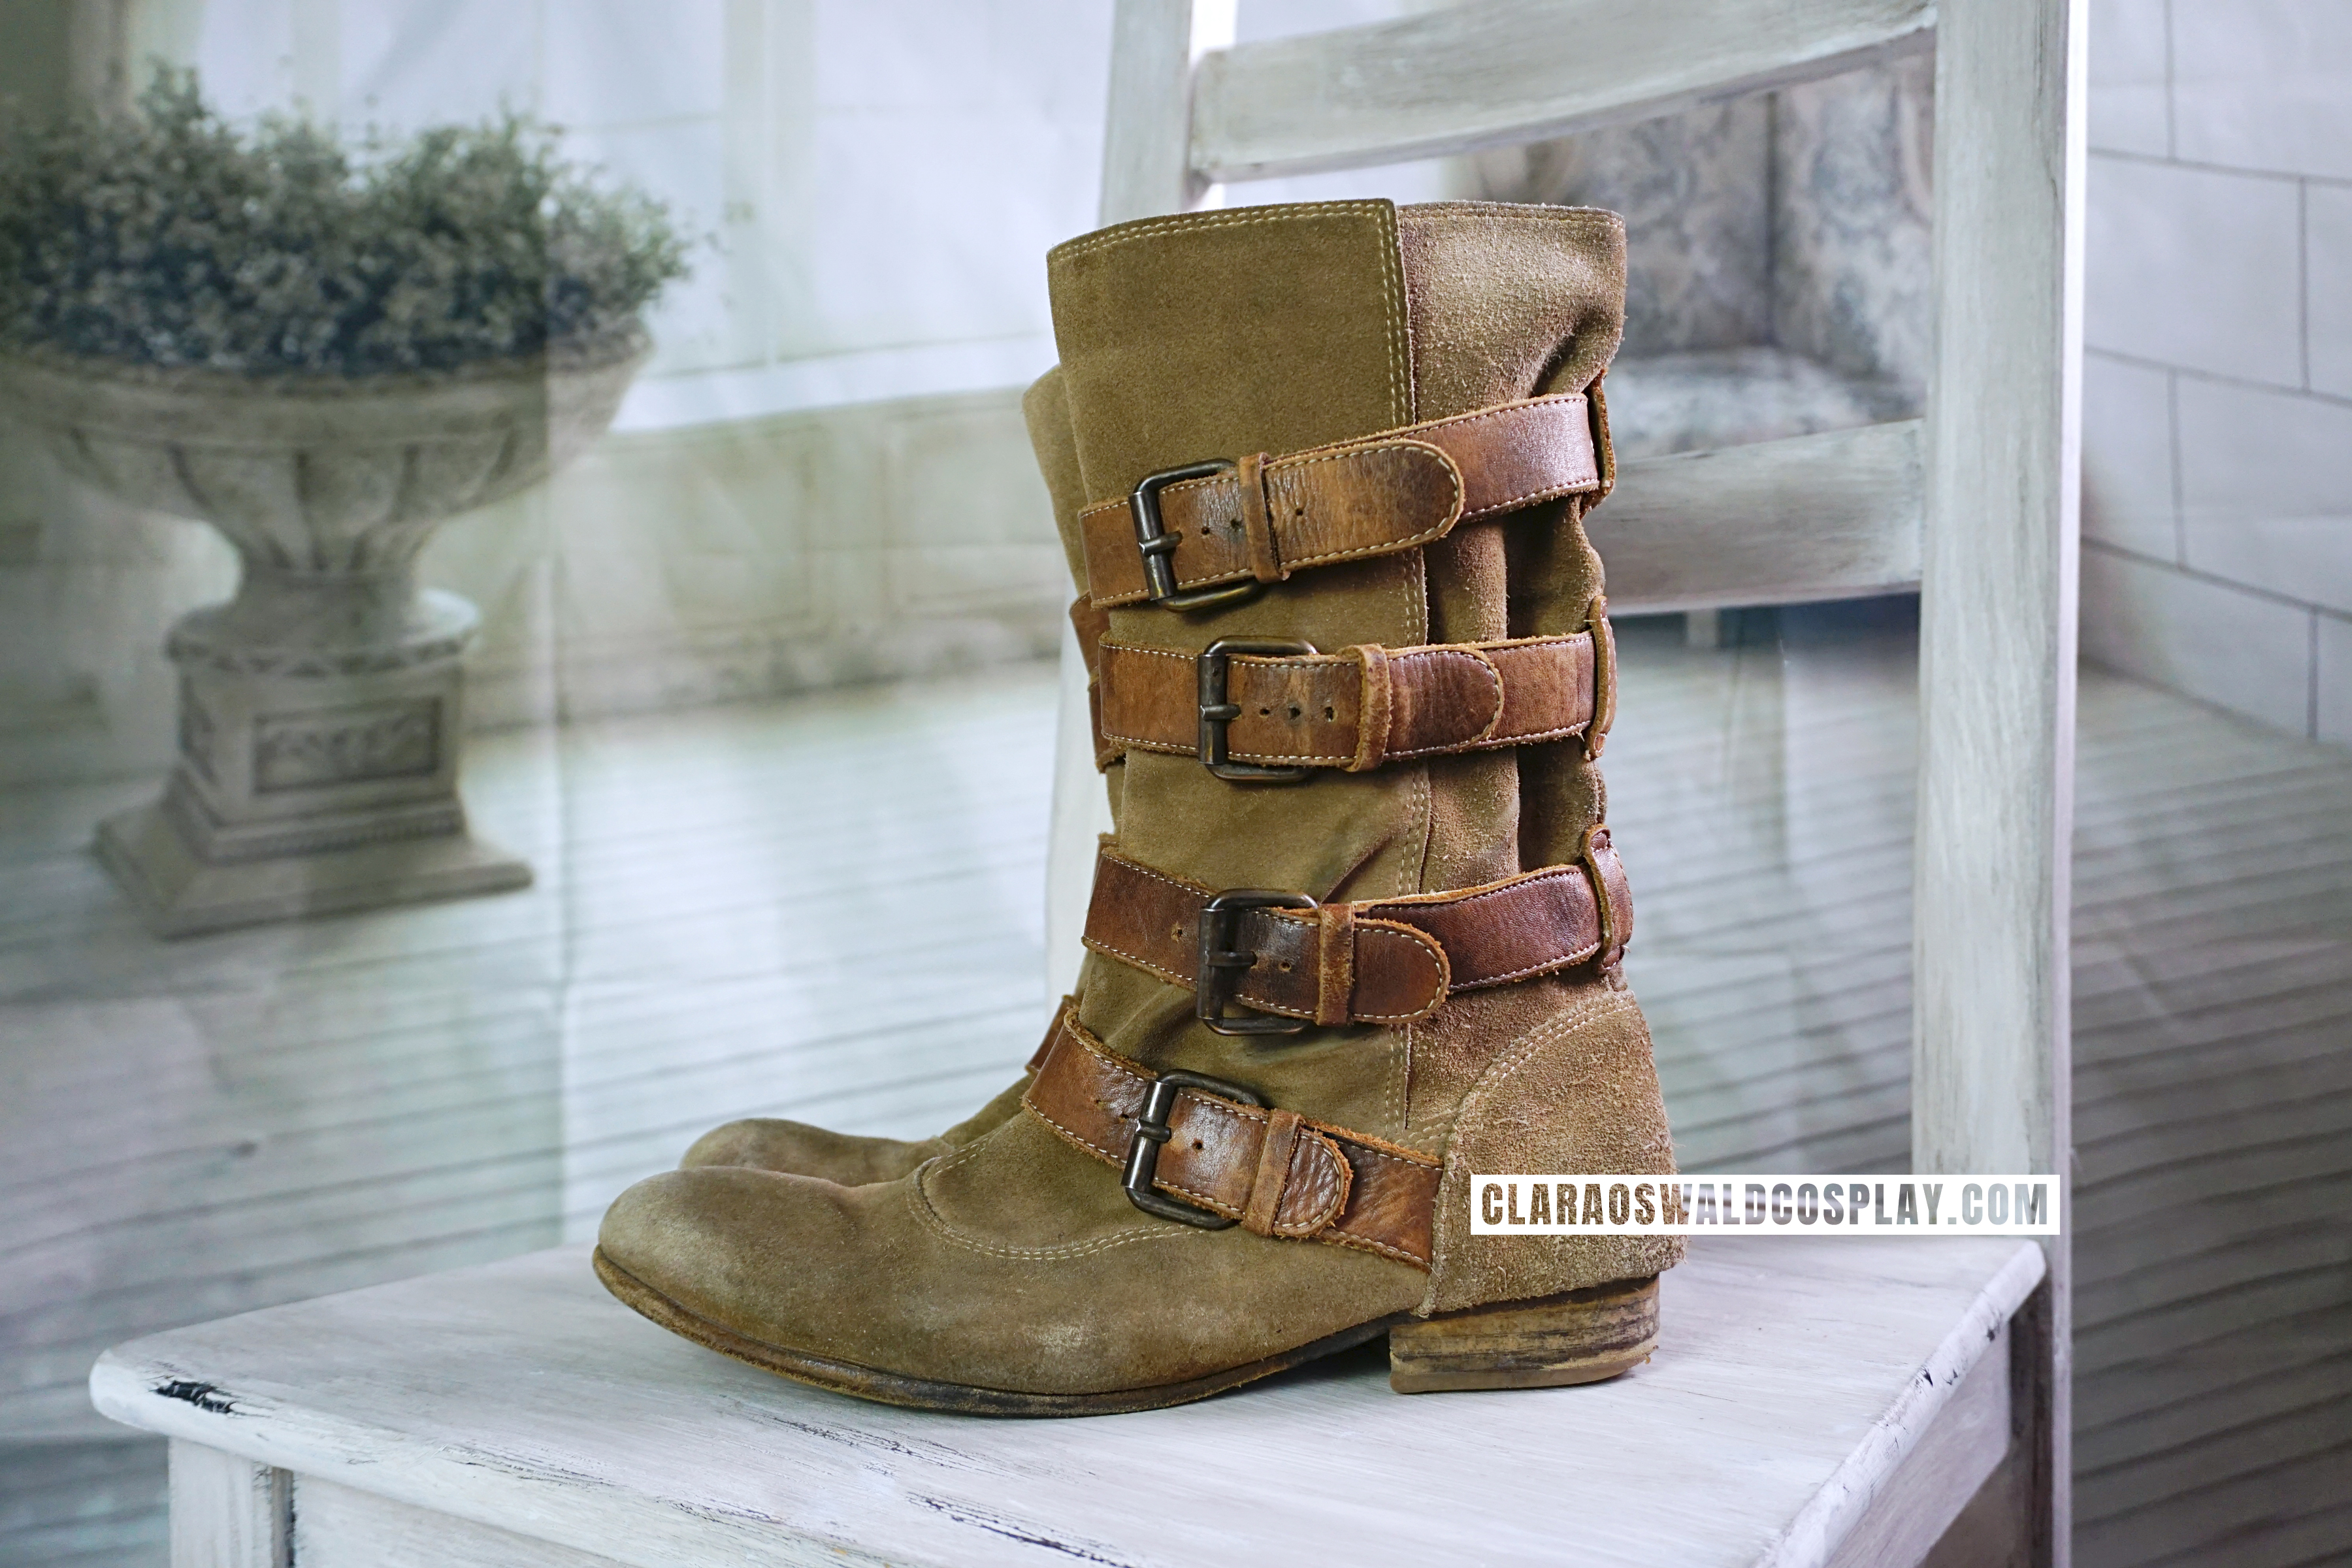 Clara Oswald's H by Hudson Keira Boots (alt colour) as worn in The Girl Who Died